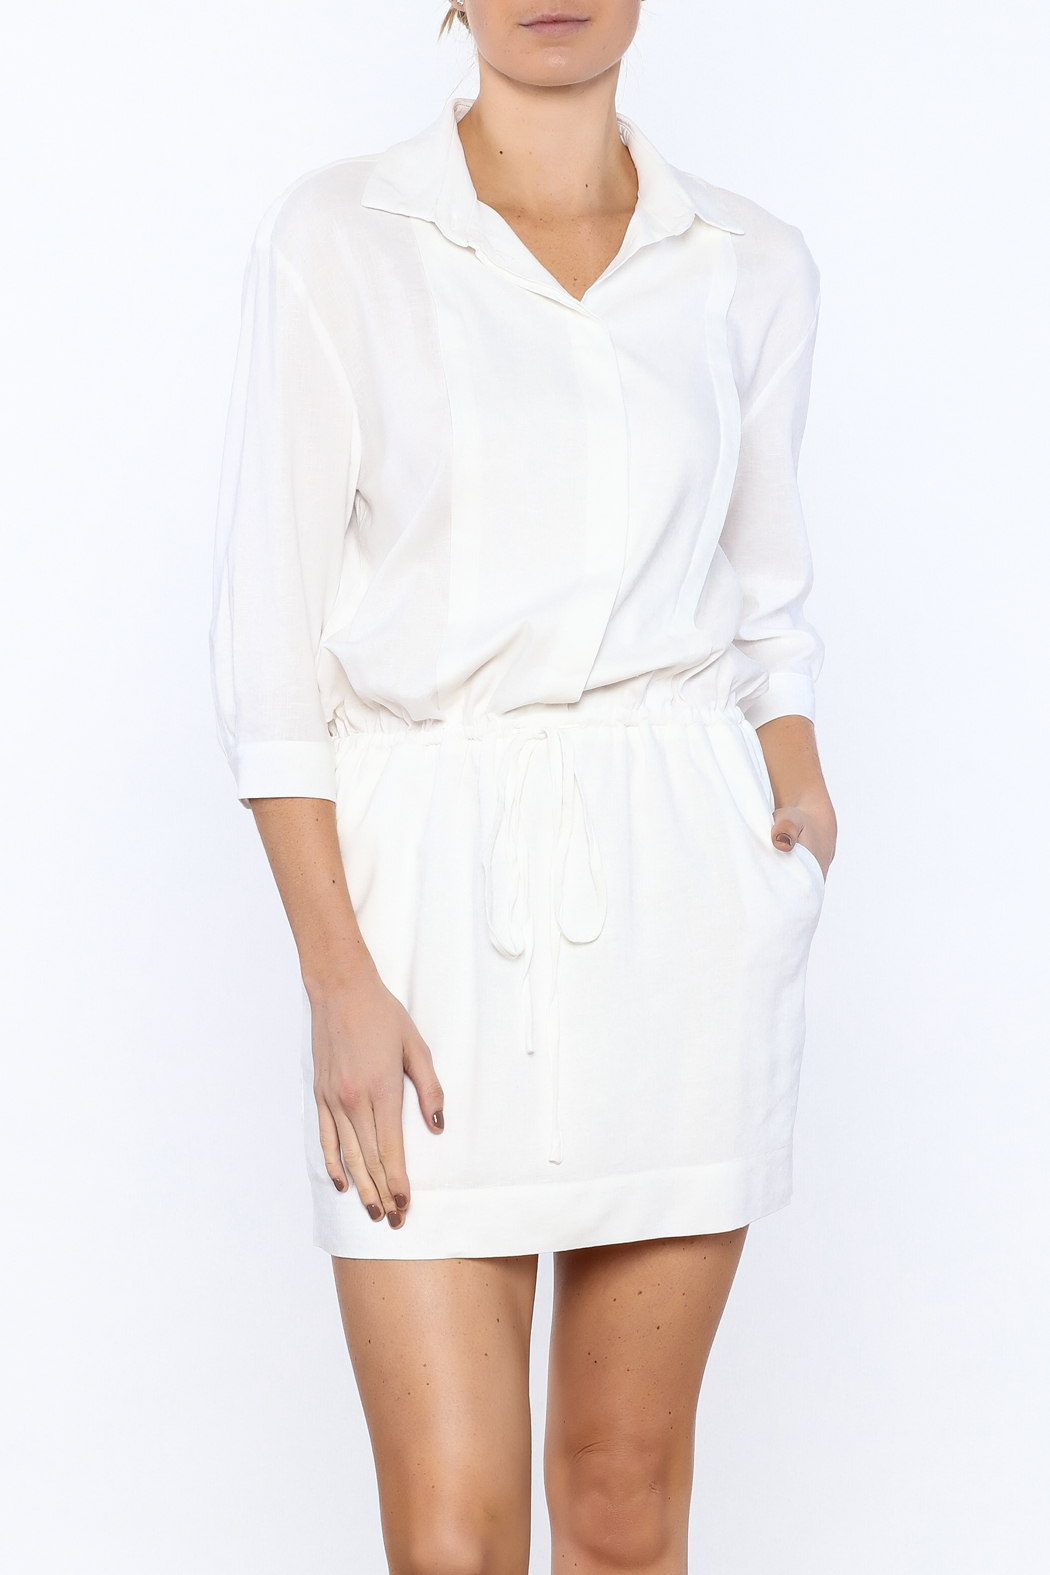 Zoa White Sheath Dress - Main Image